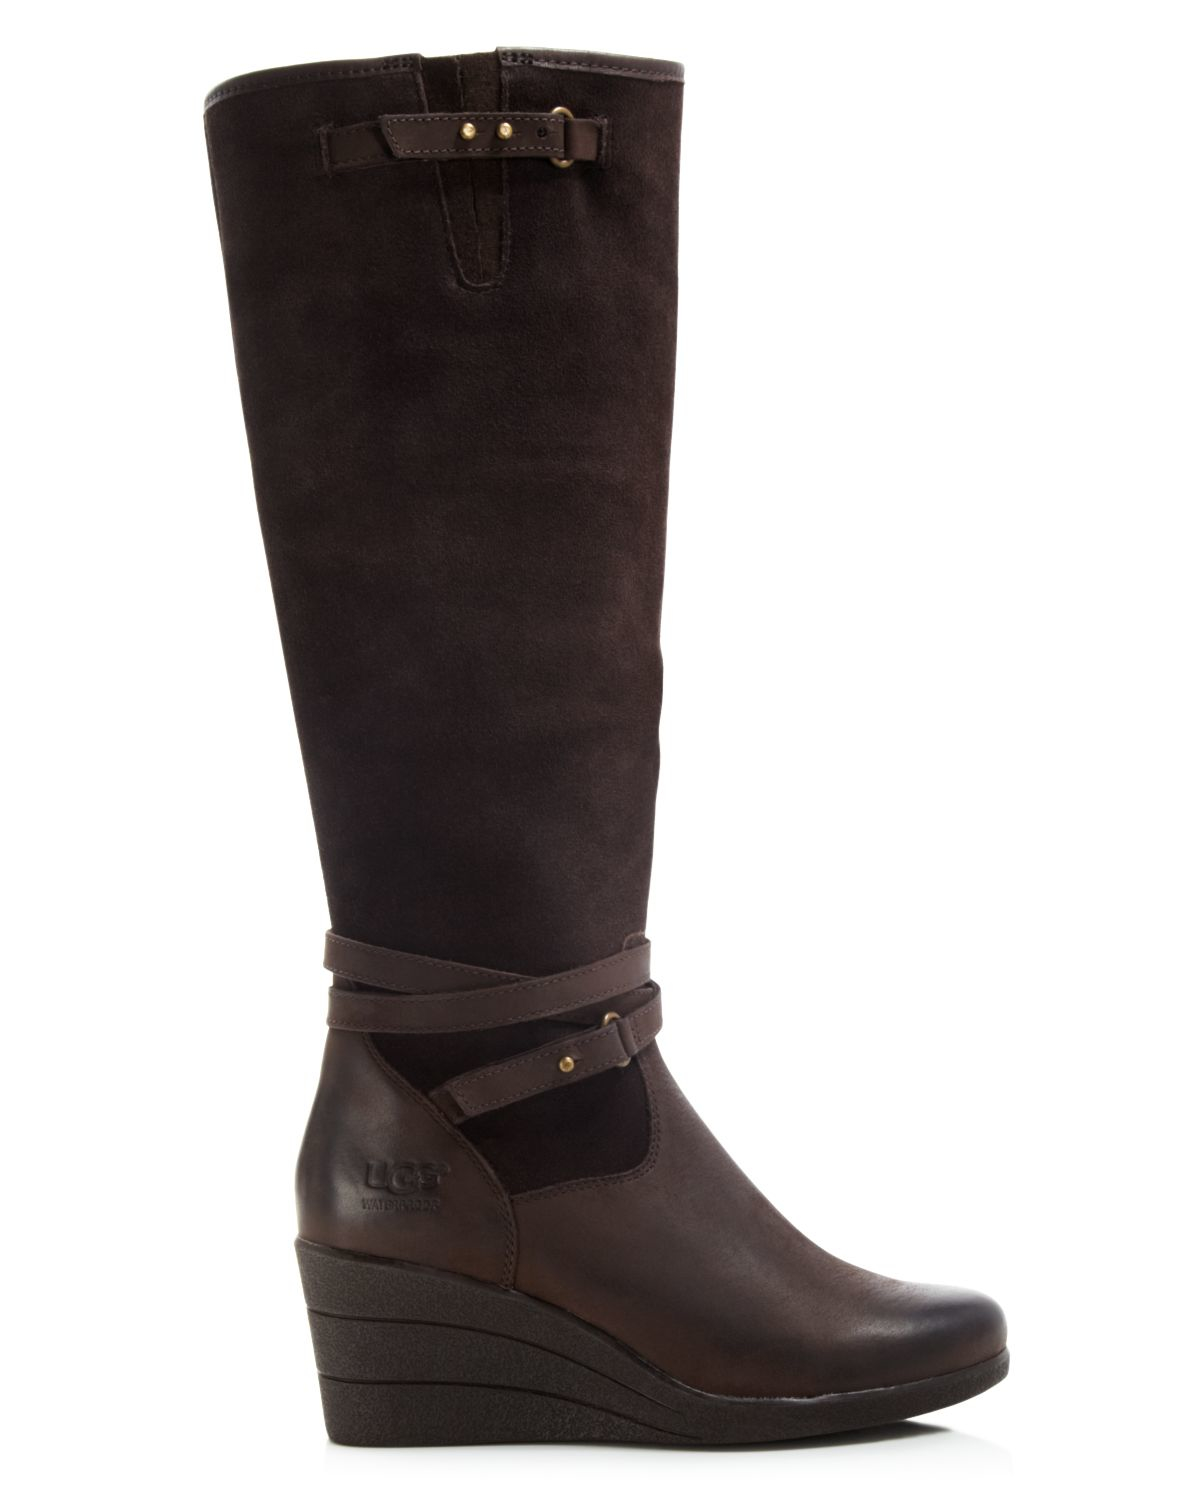 Lyst Ugg Ugg 174 Australia Tall Wedge Boots Lesley In Brown